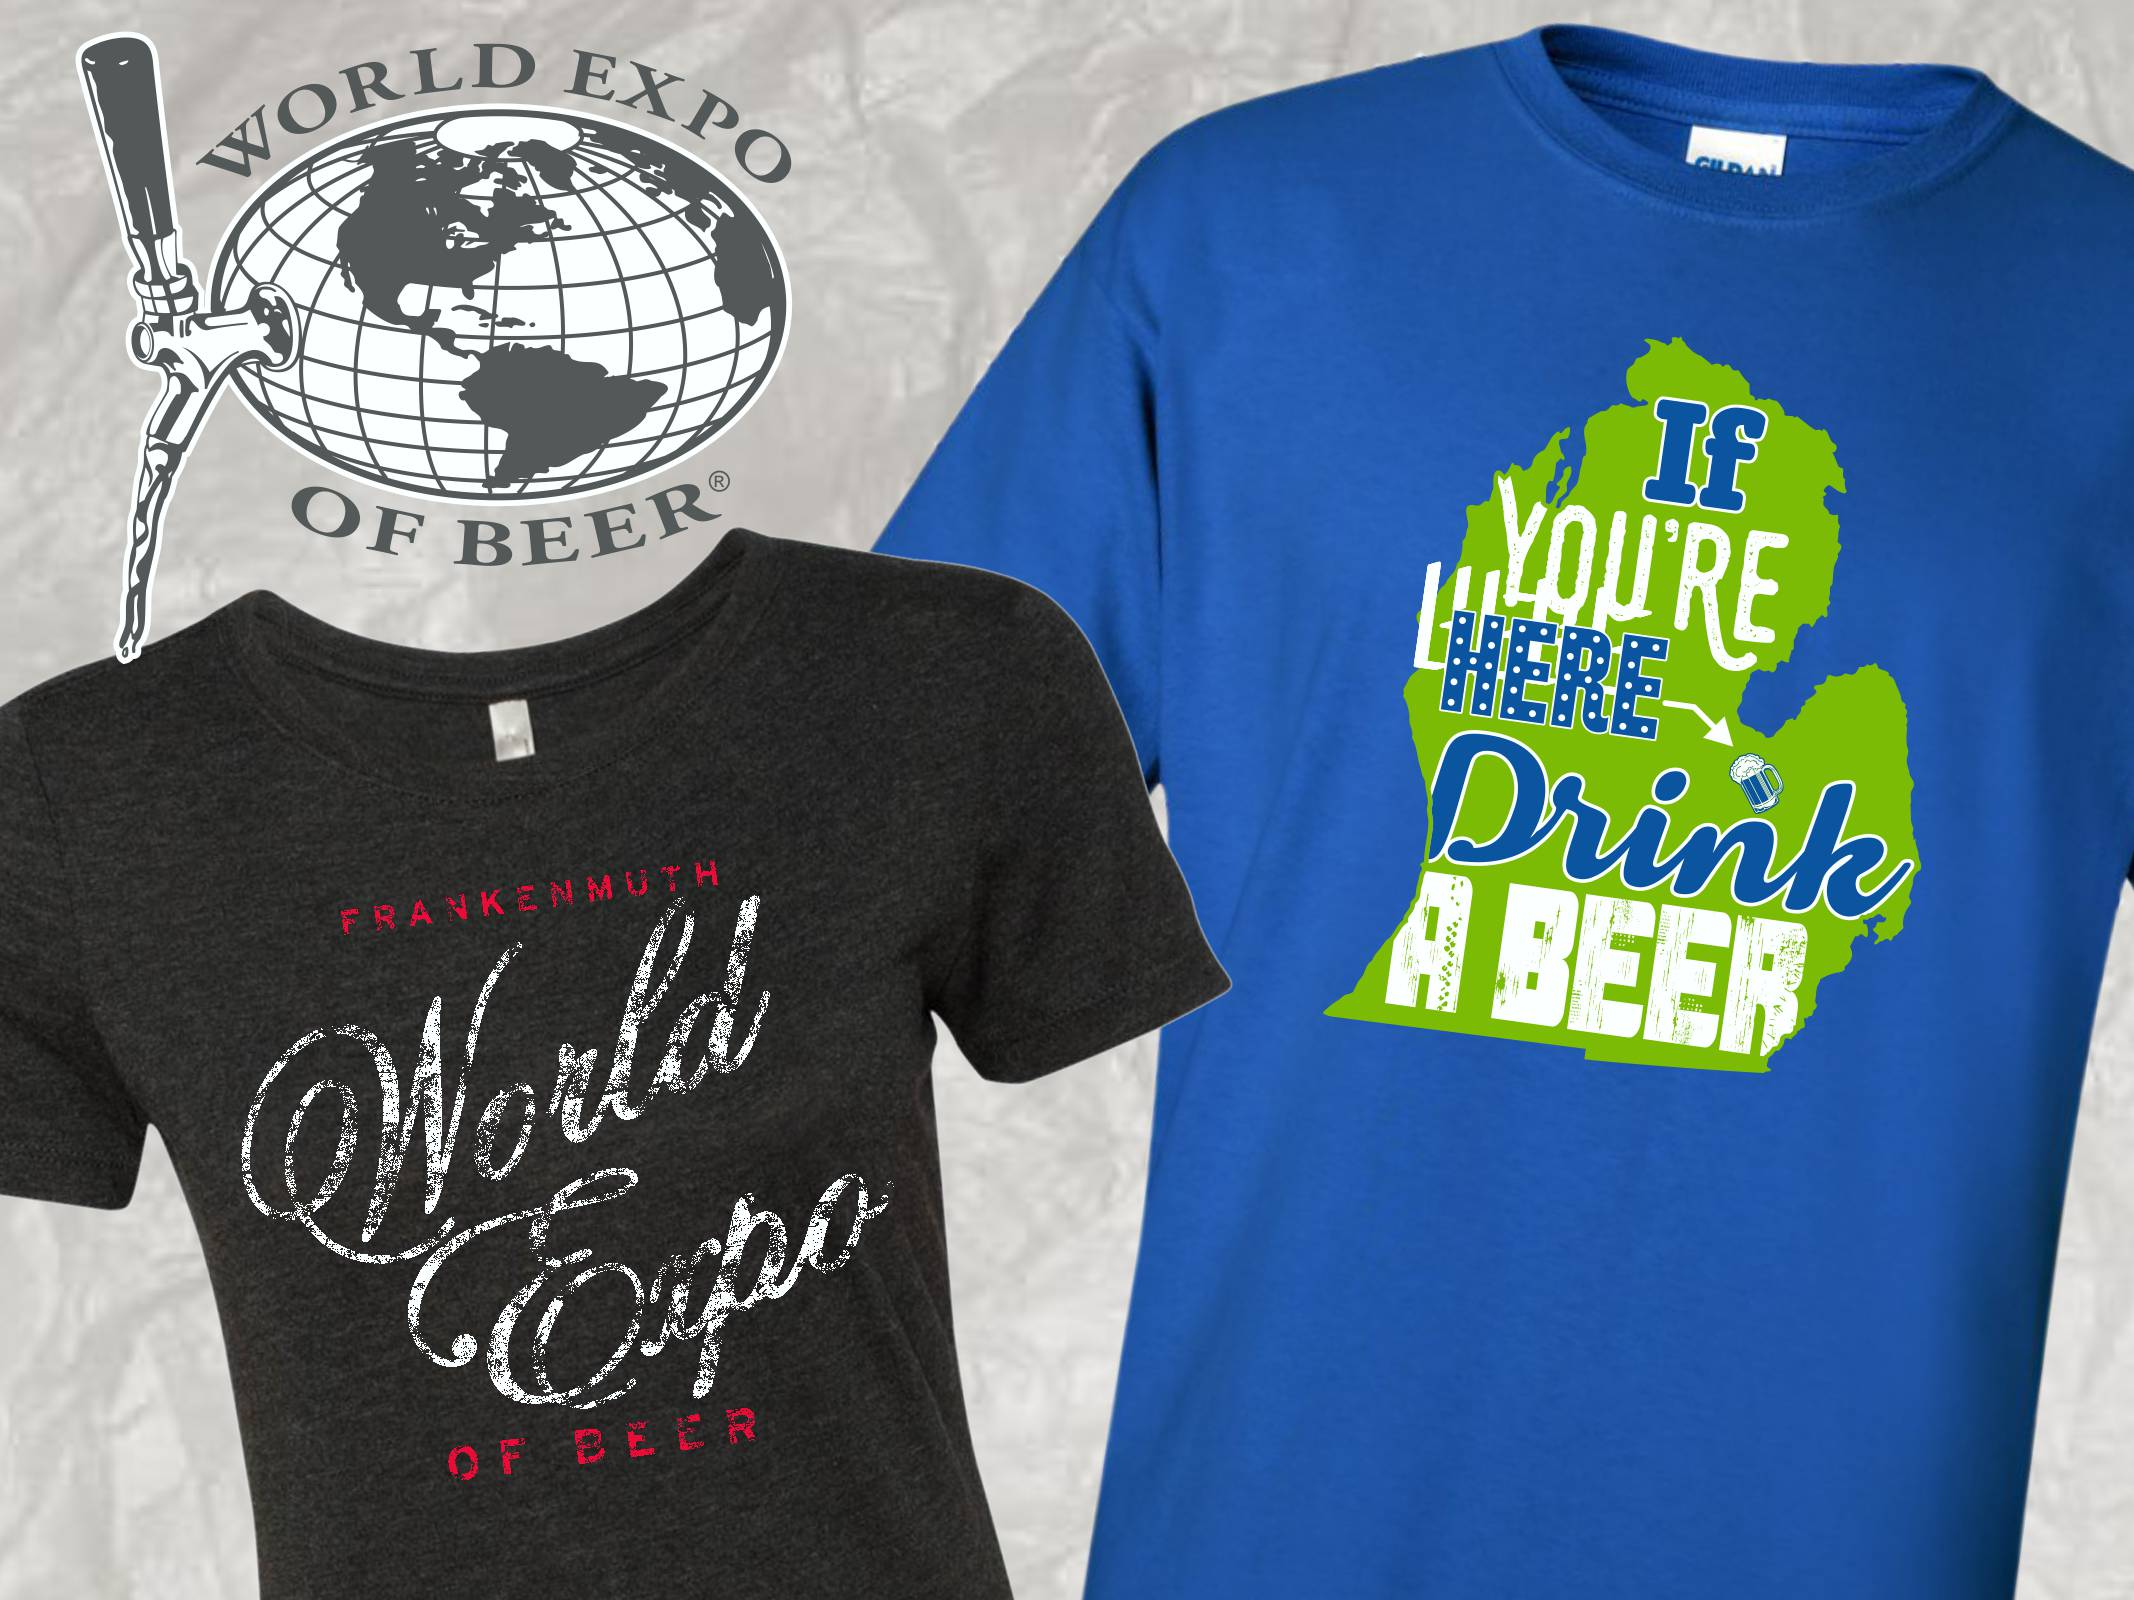 World Expo of Beer